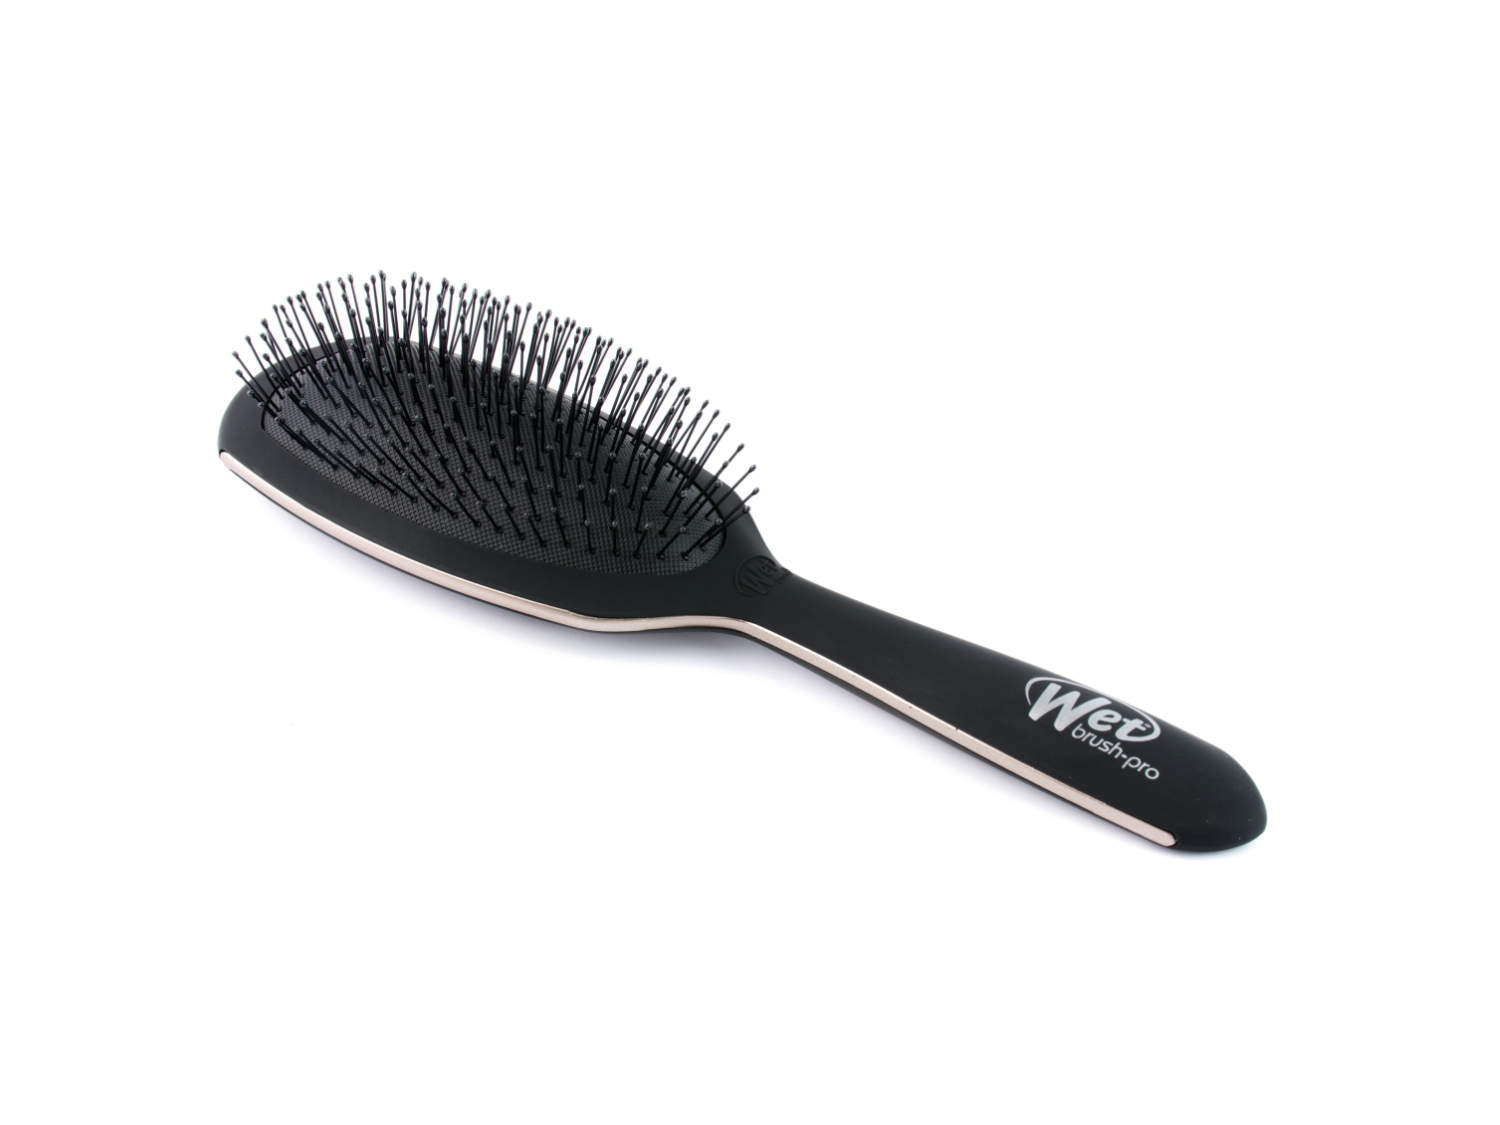 Arma Beauty - Wet Brush - BWP830EPIC